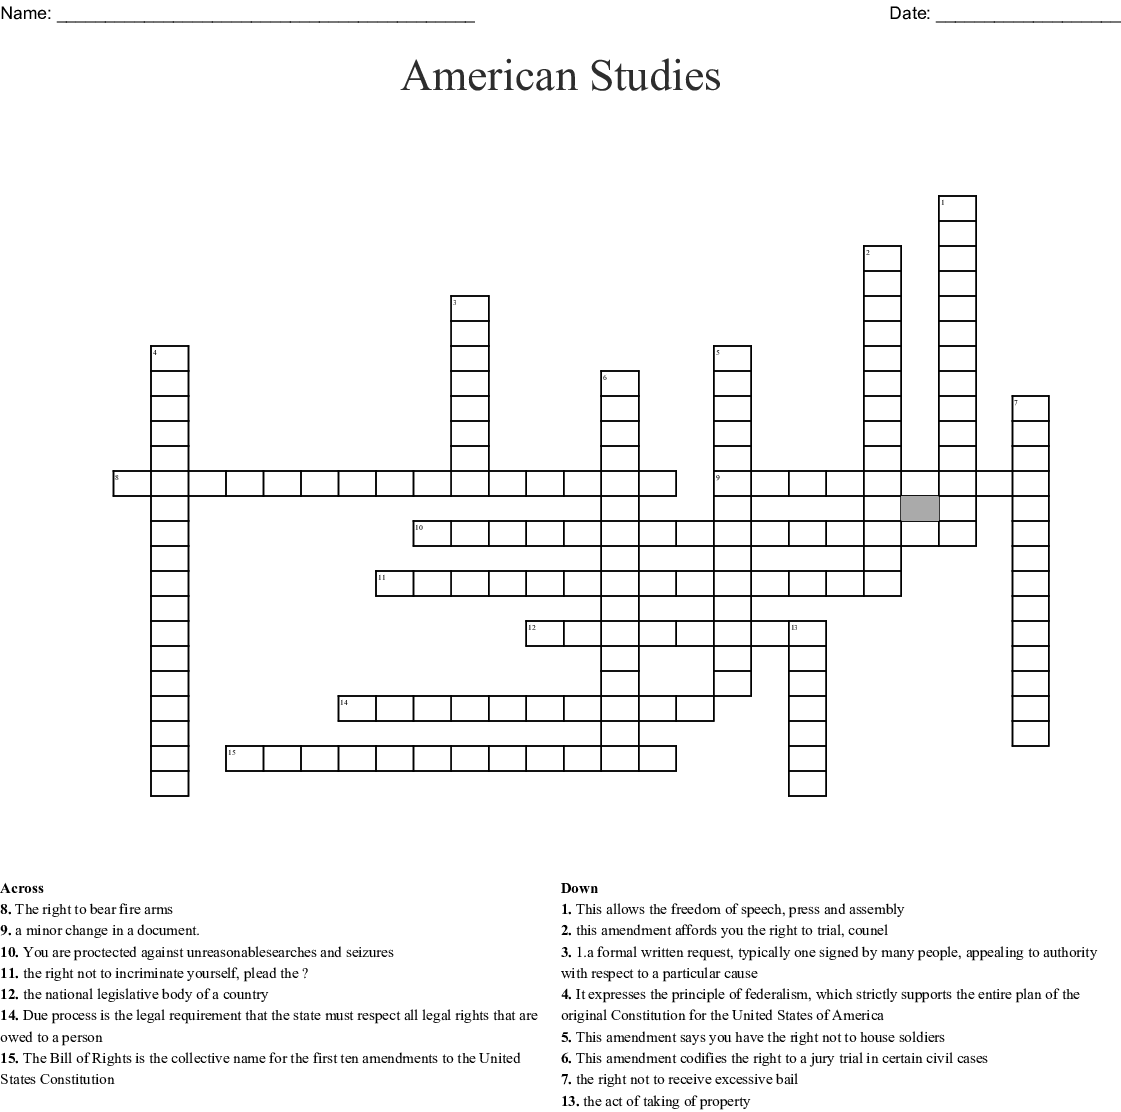 Chapter 5 Study Guide Crossword